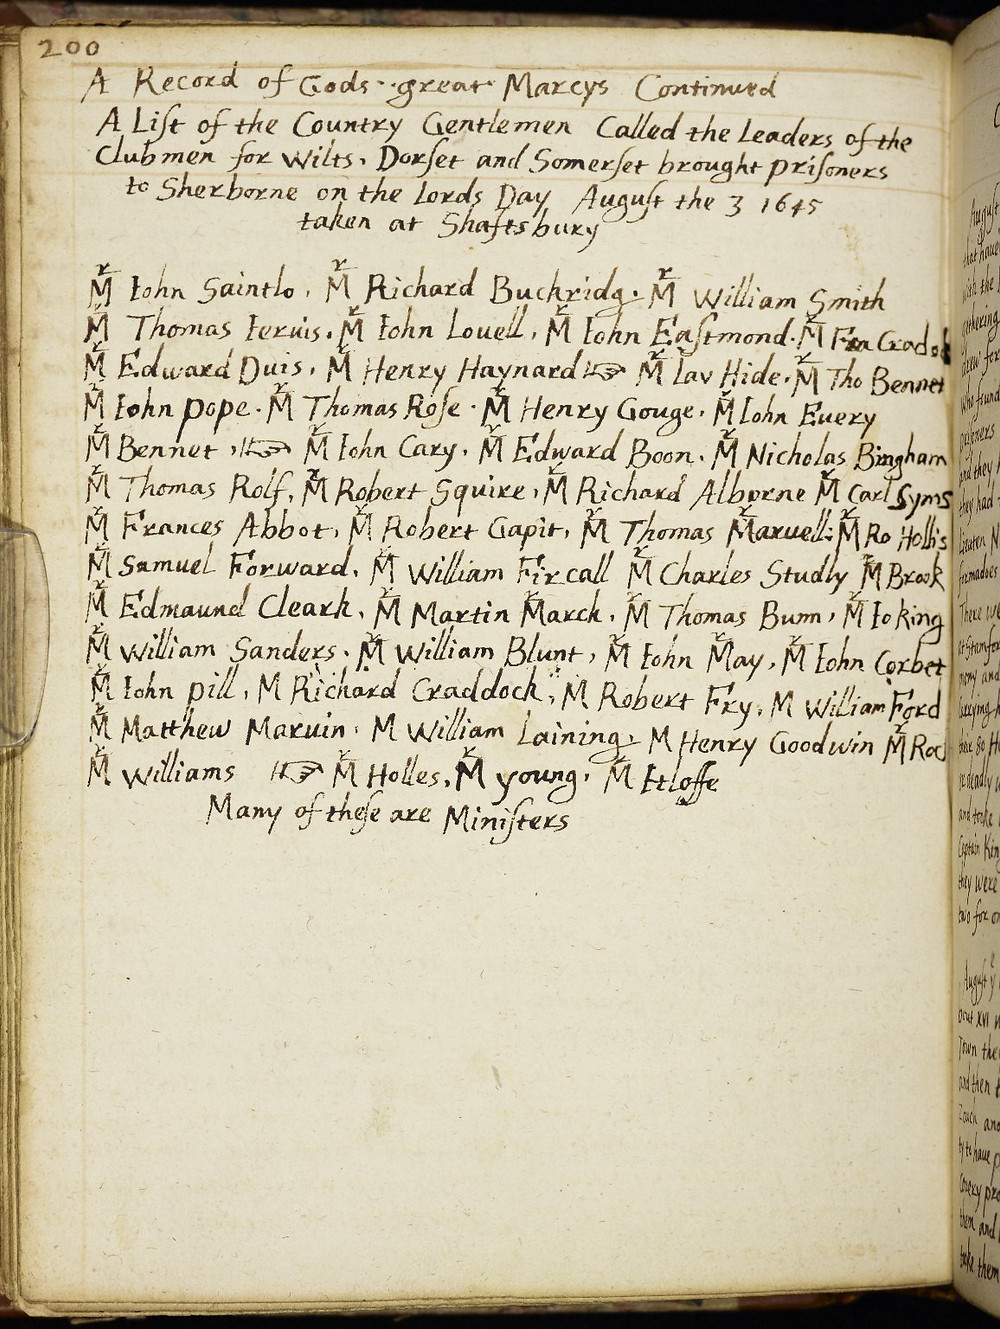 Clubmen leaders taken prisoner in Shaftesbury. List from the Ryland Collection, Manchester.